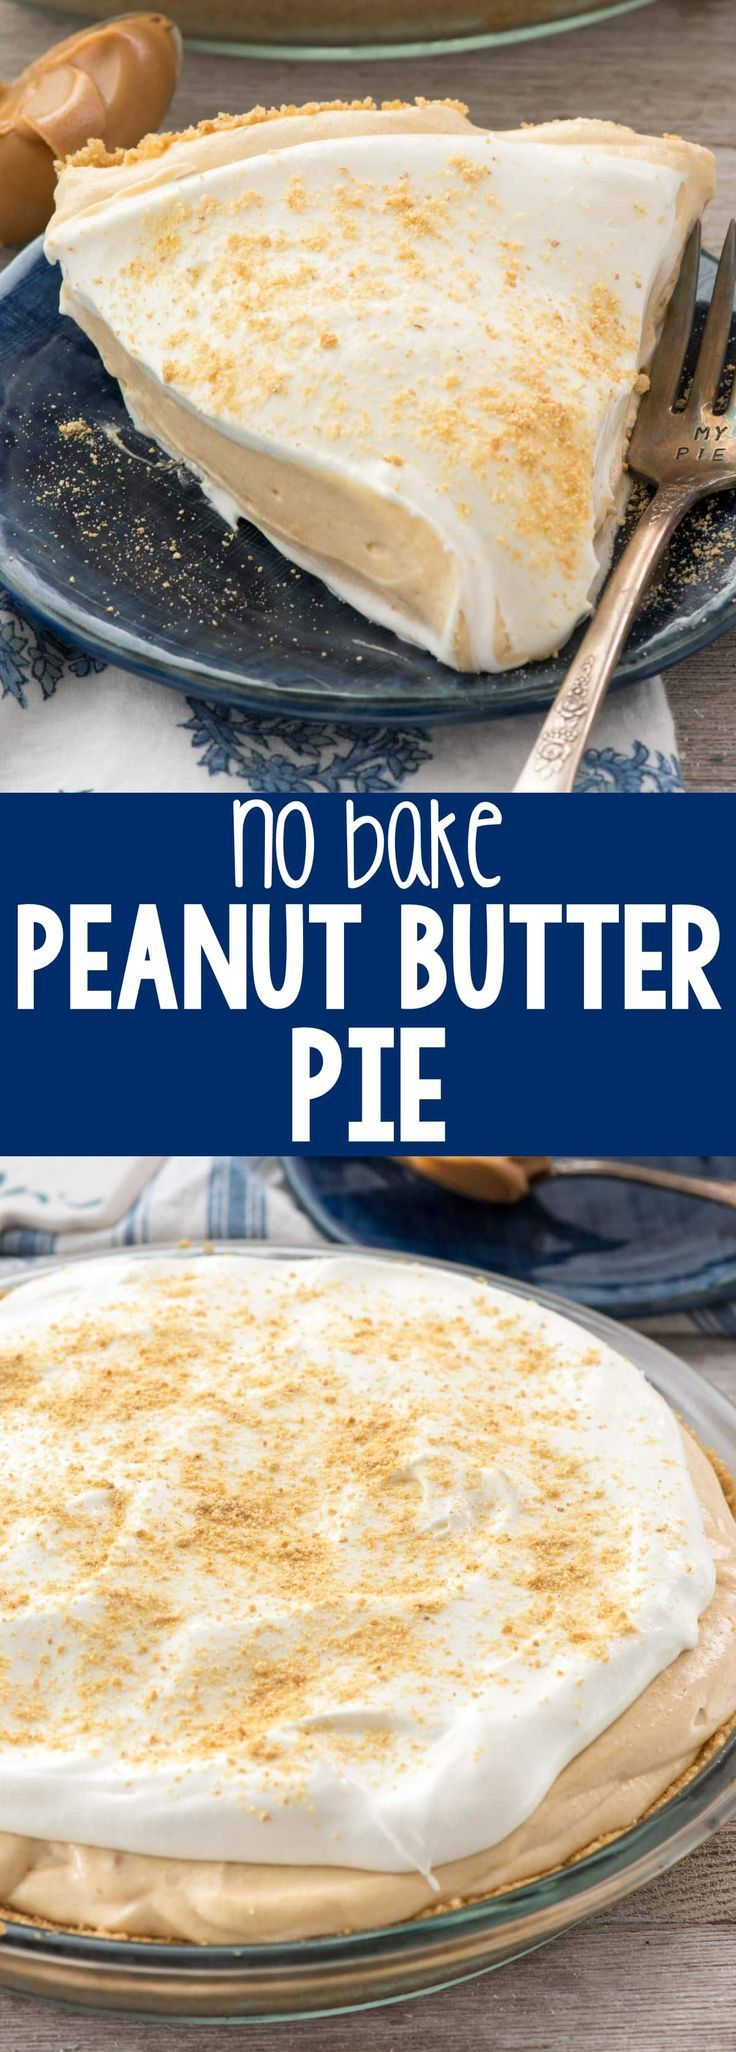 Food Photography: No Bake Peanut Butter Pie